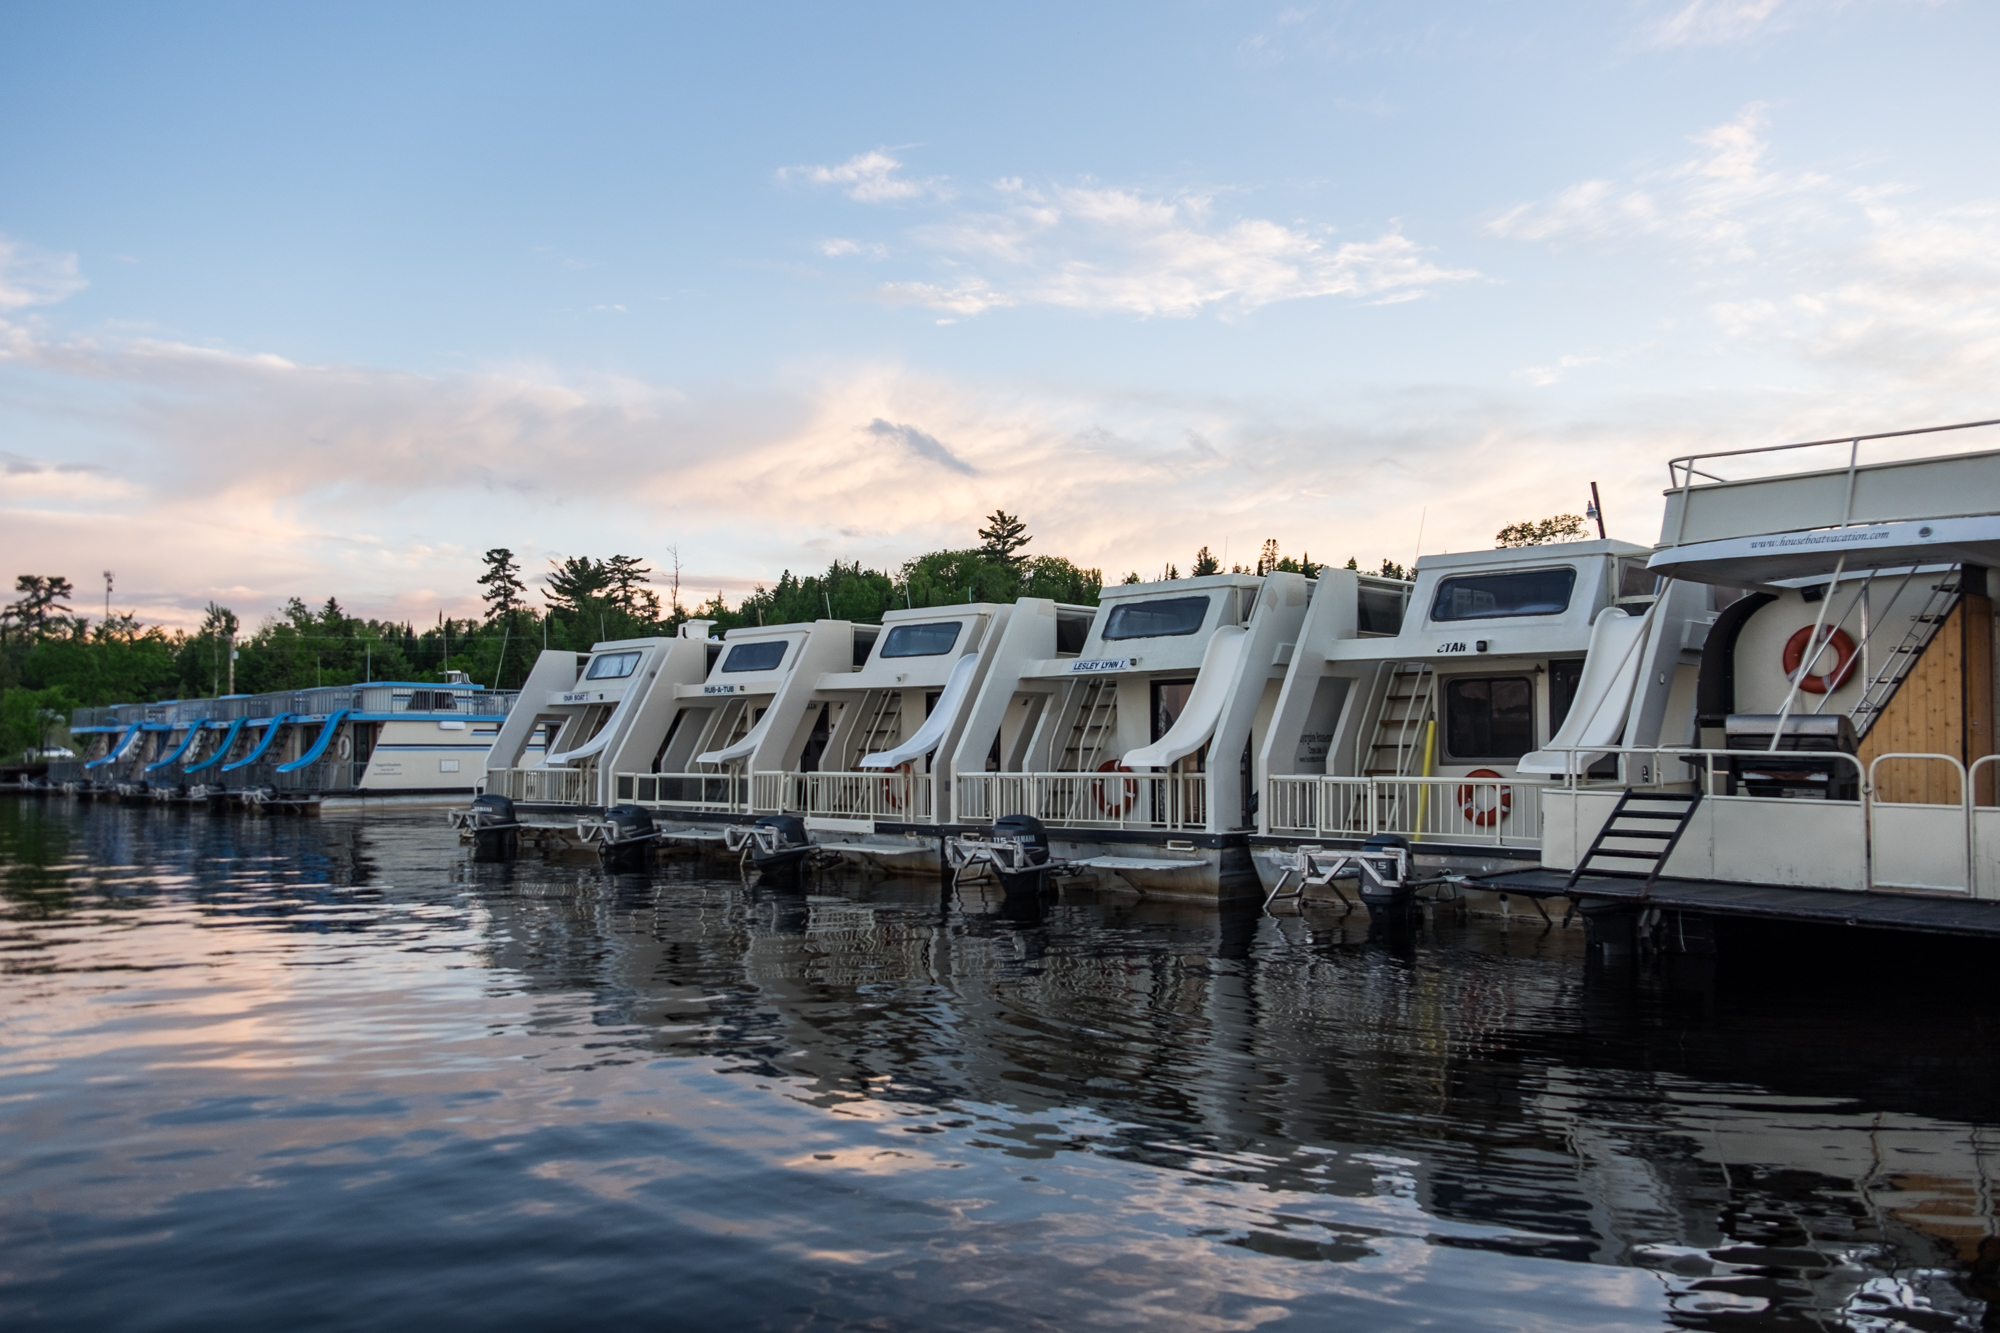 A row of houseboats await the summer crowds.